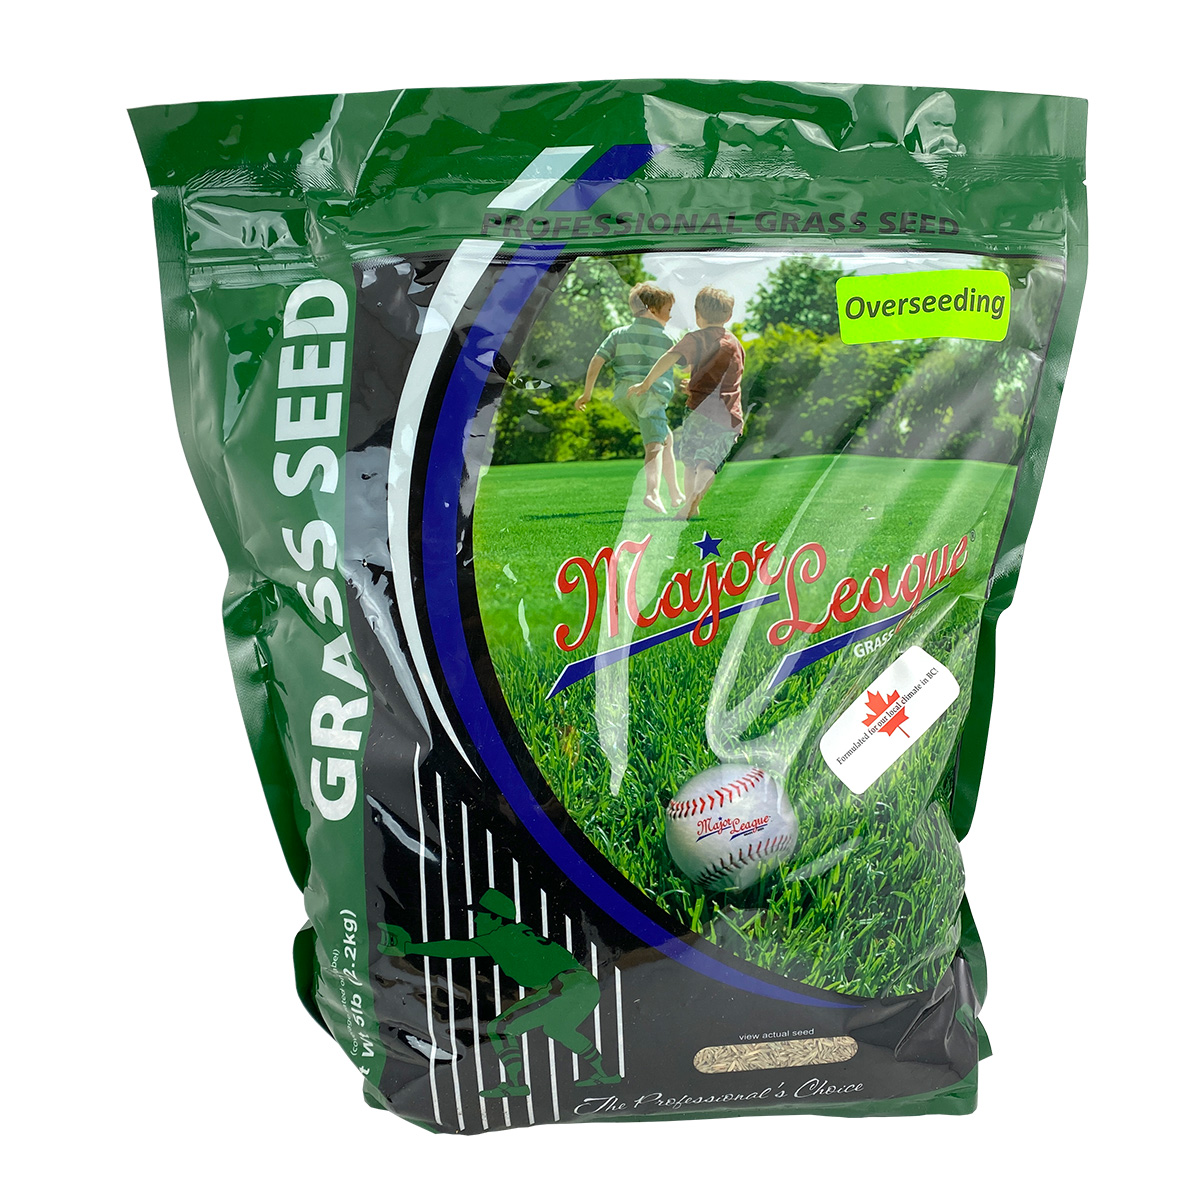 Major League Grass Seed Overseeding Mix 2.27kg